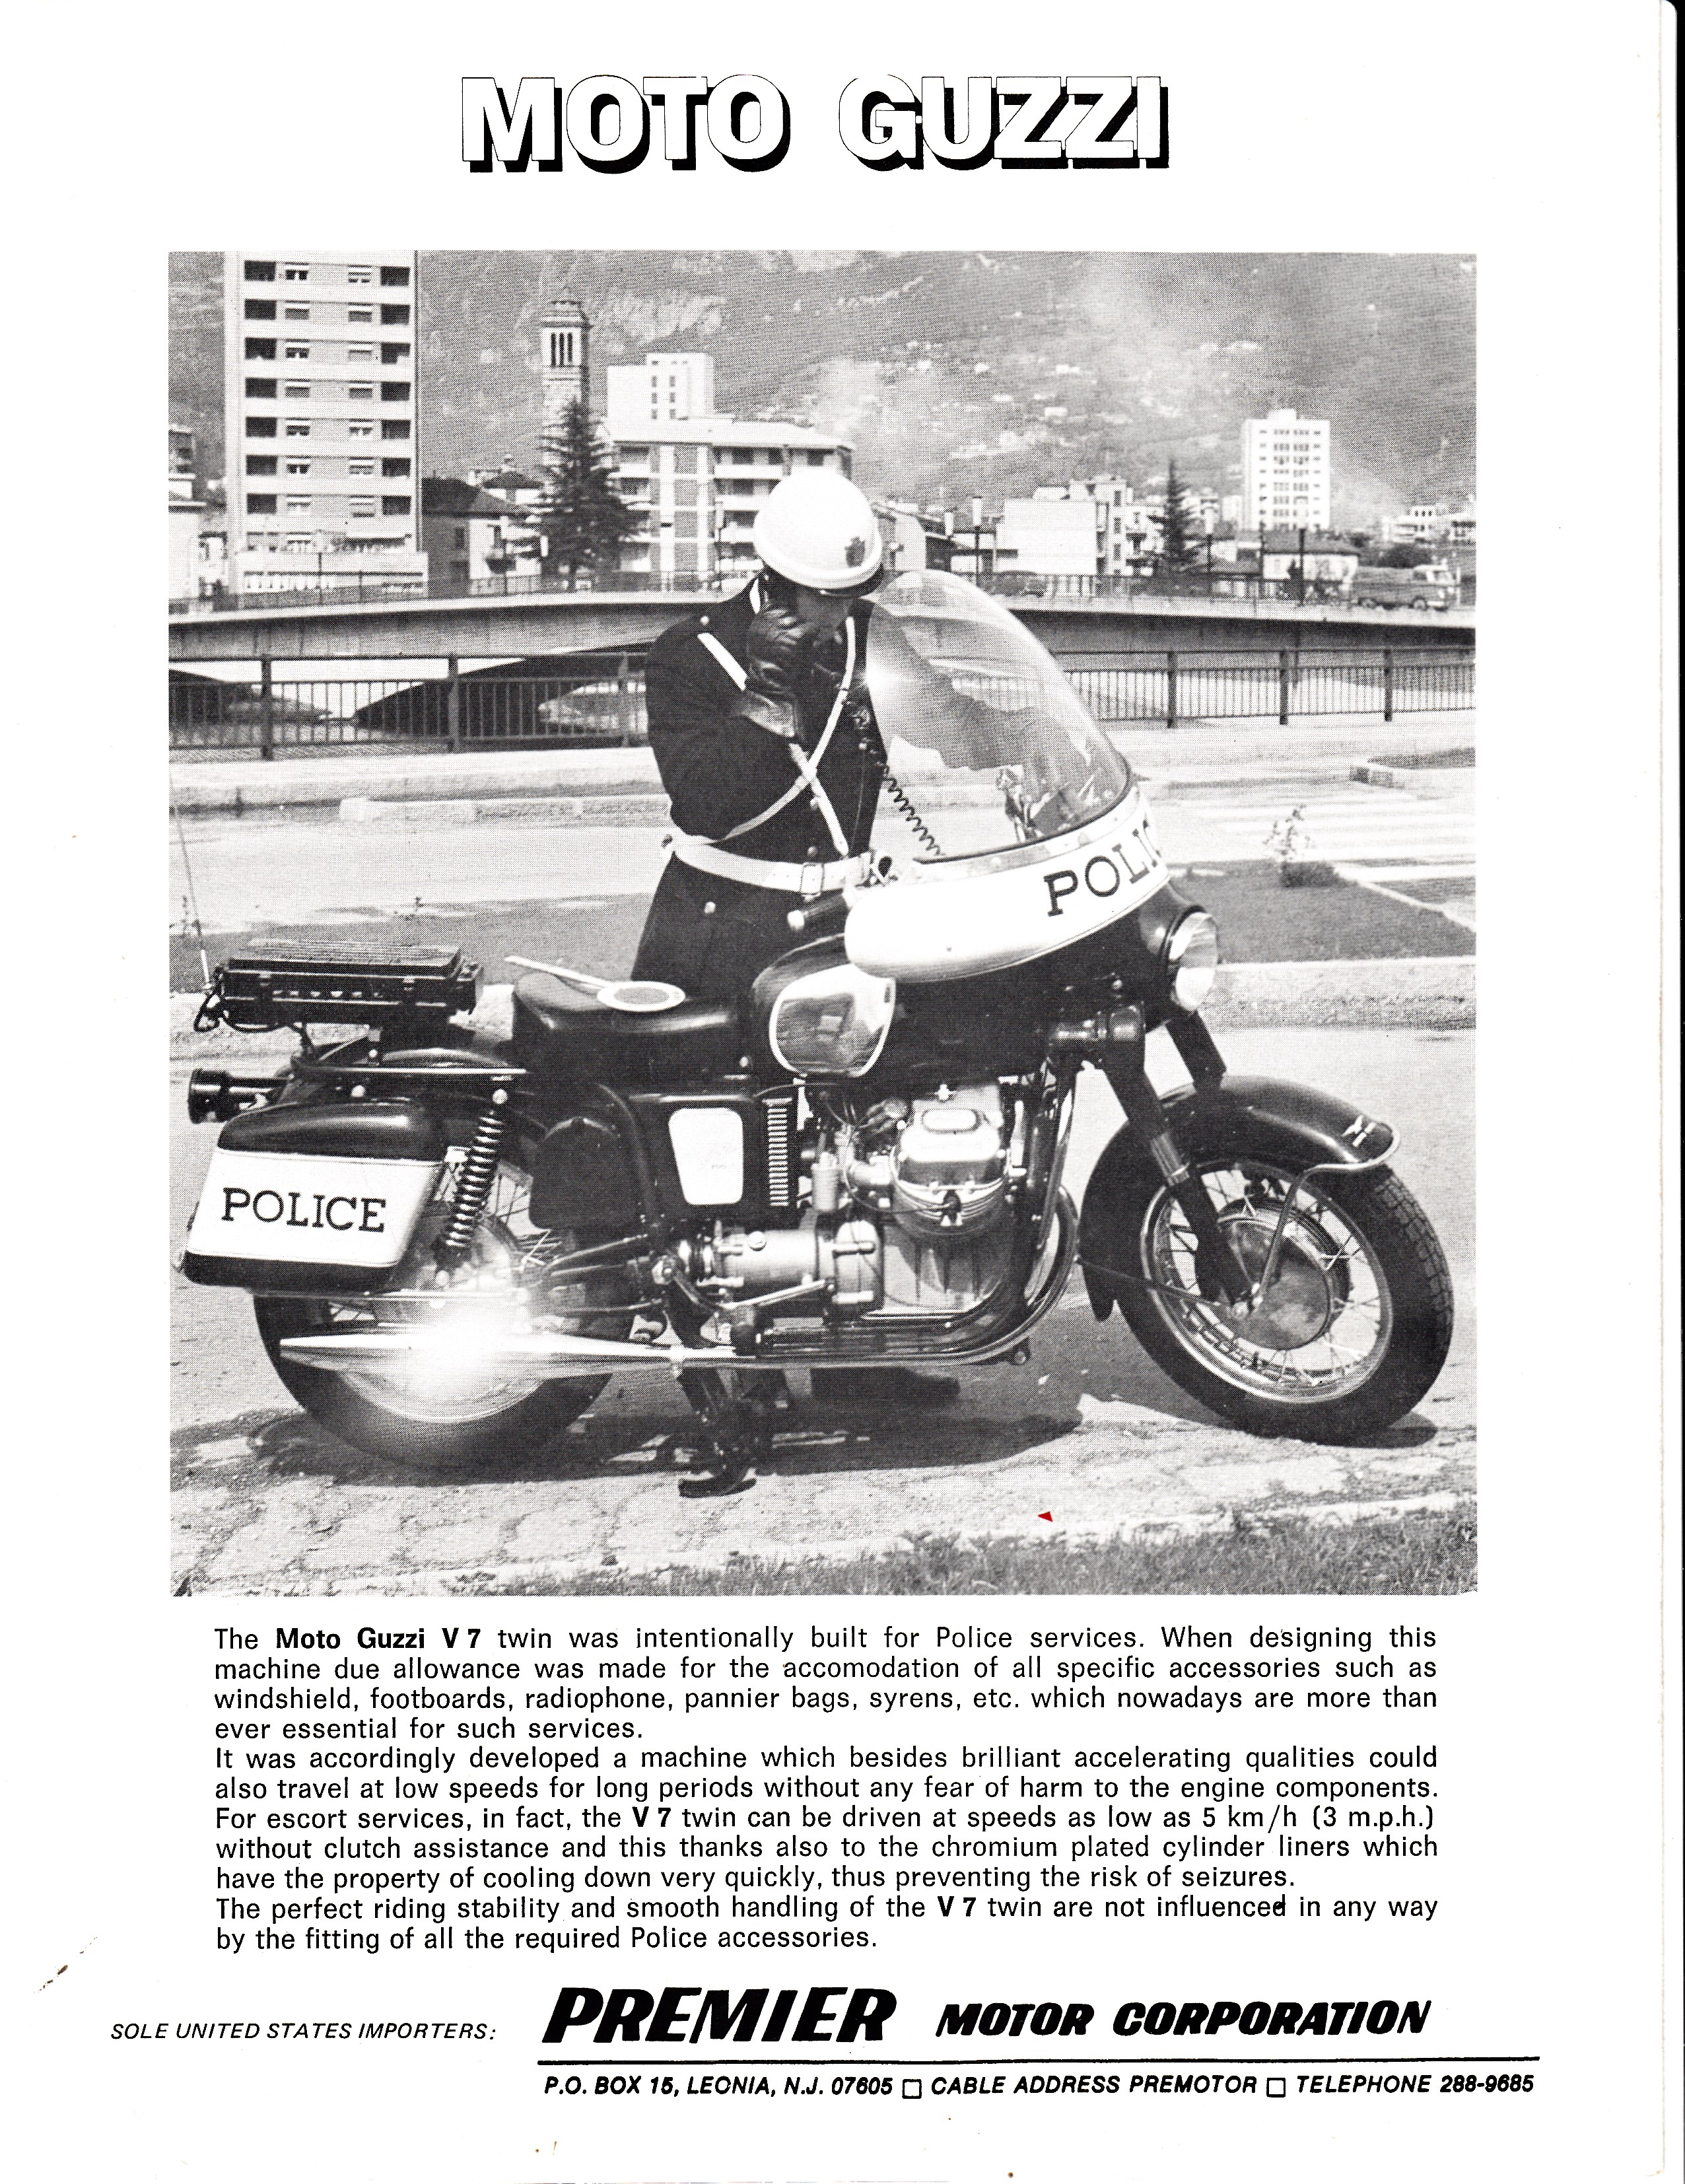 Moto Guzzi V700 factory brochure of magazine reviews, Page 8 of 8.